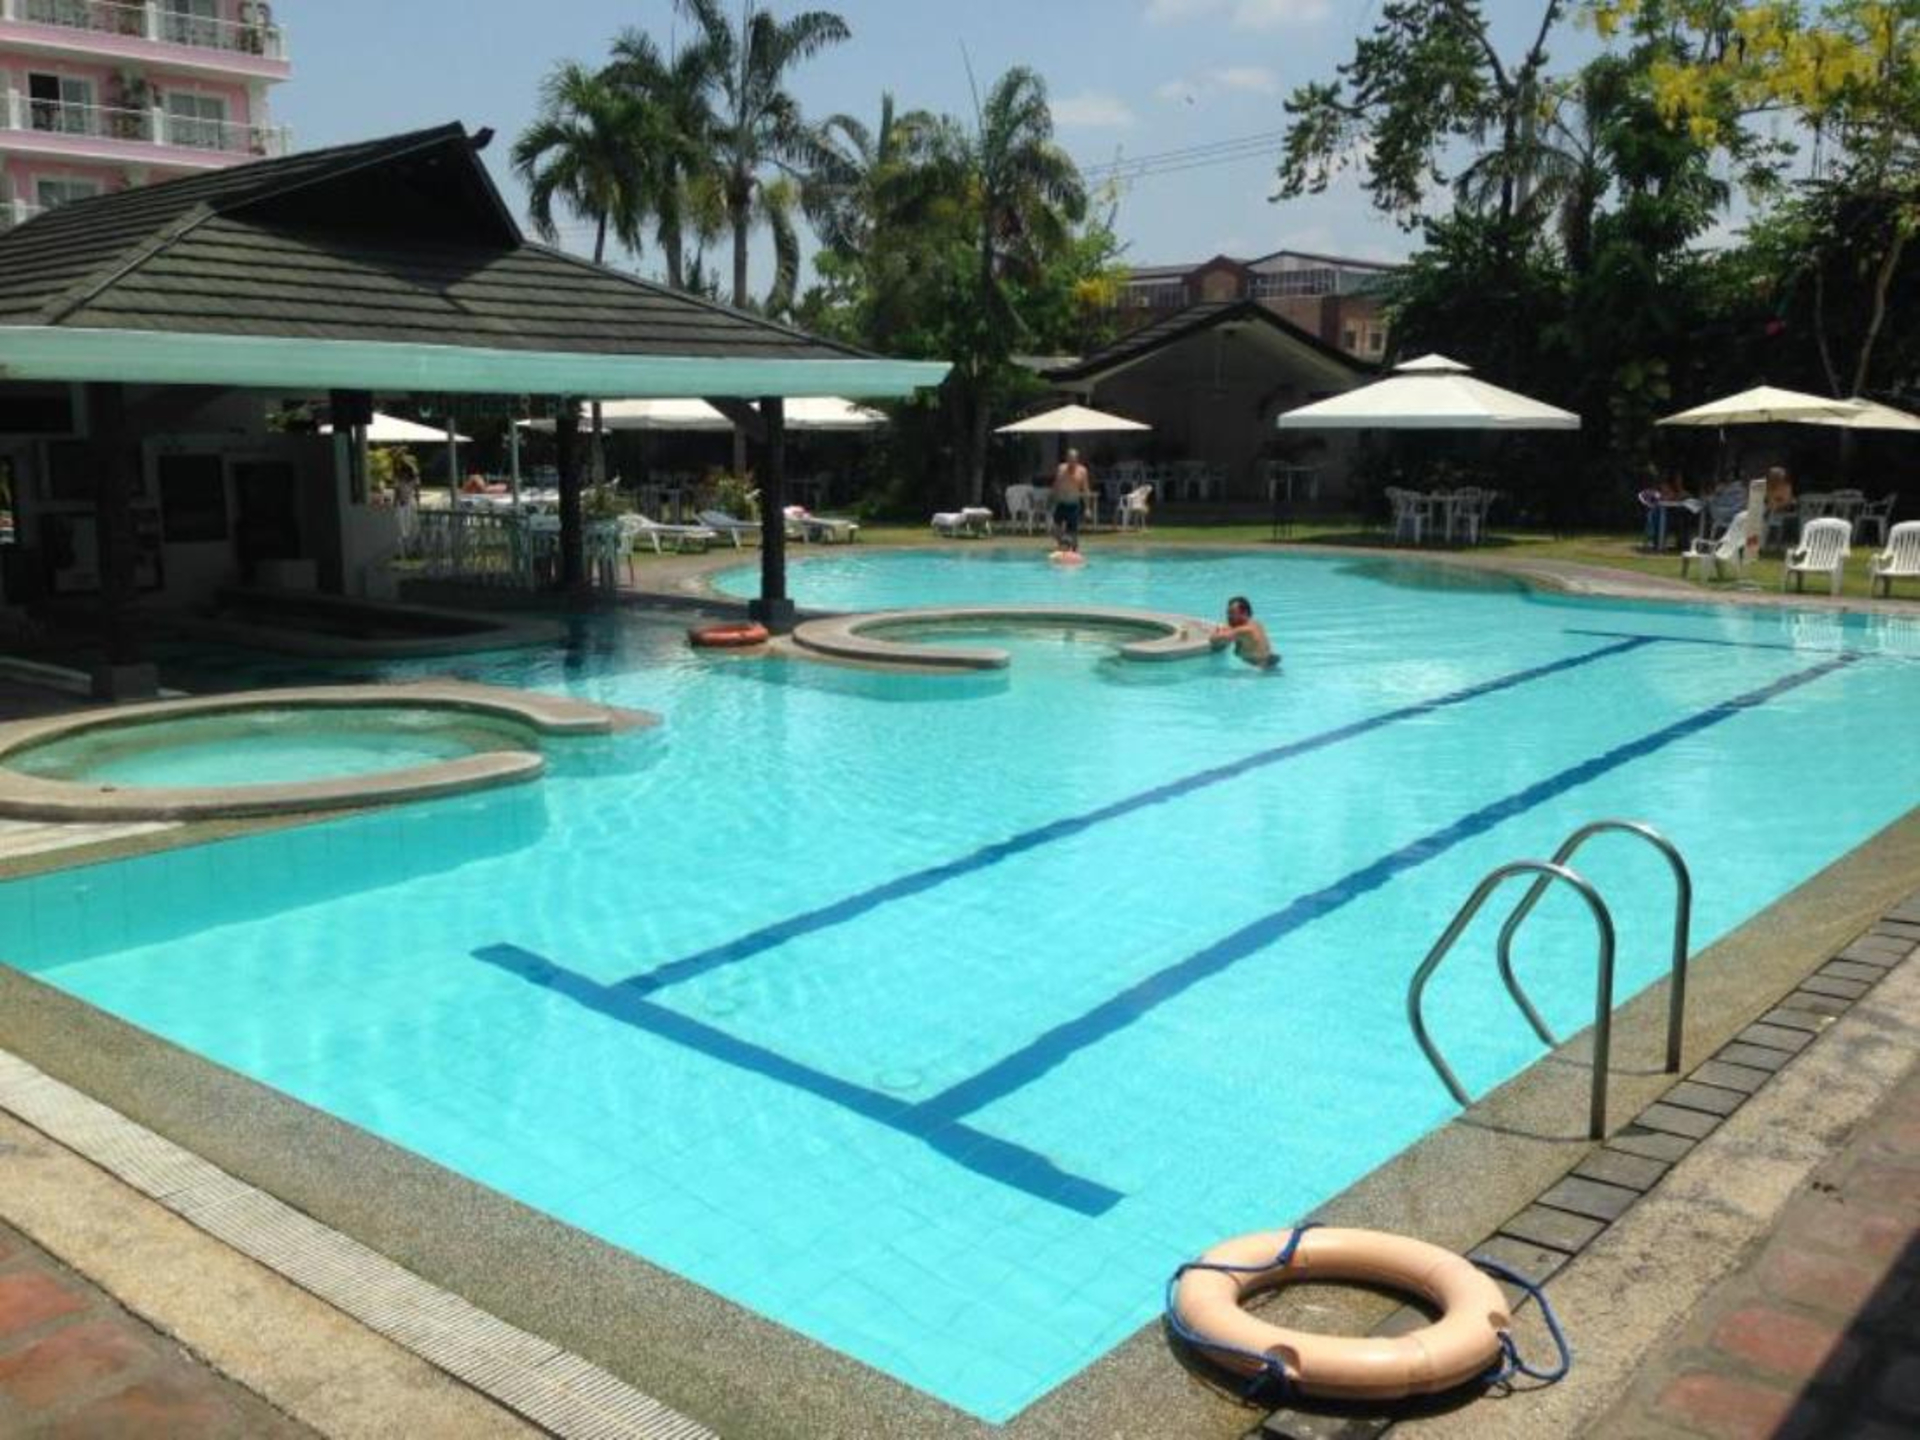 Wild Orchid Beach Resort and Hotel - Wild Orchid Resort Angeles A place to begin memories full of fun